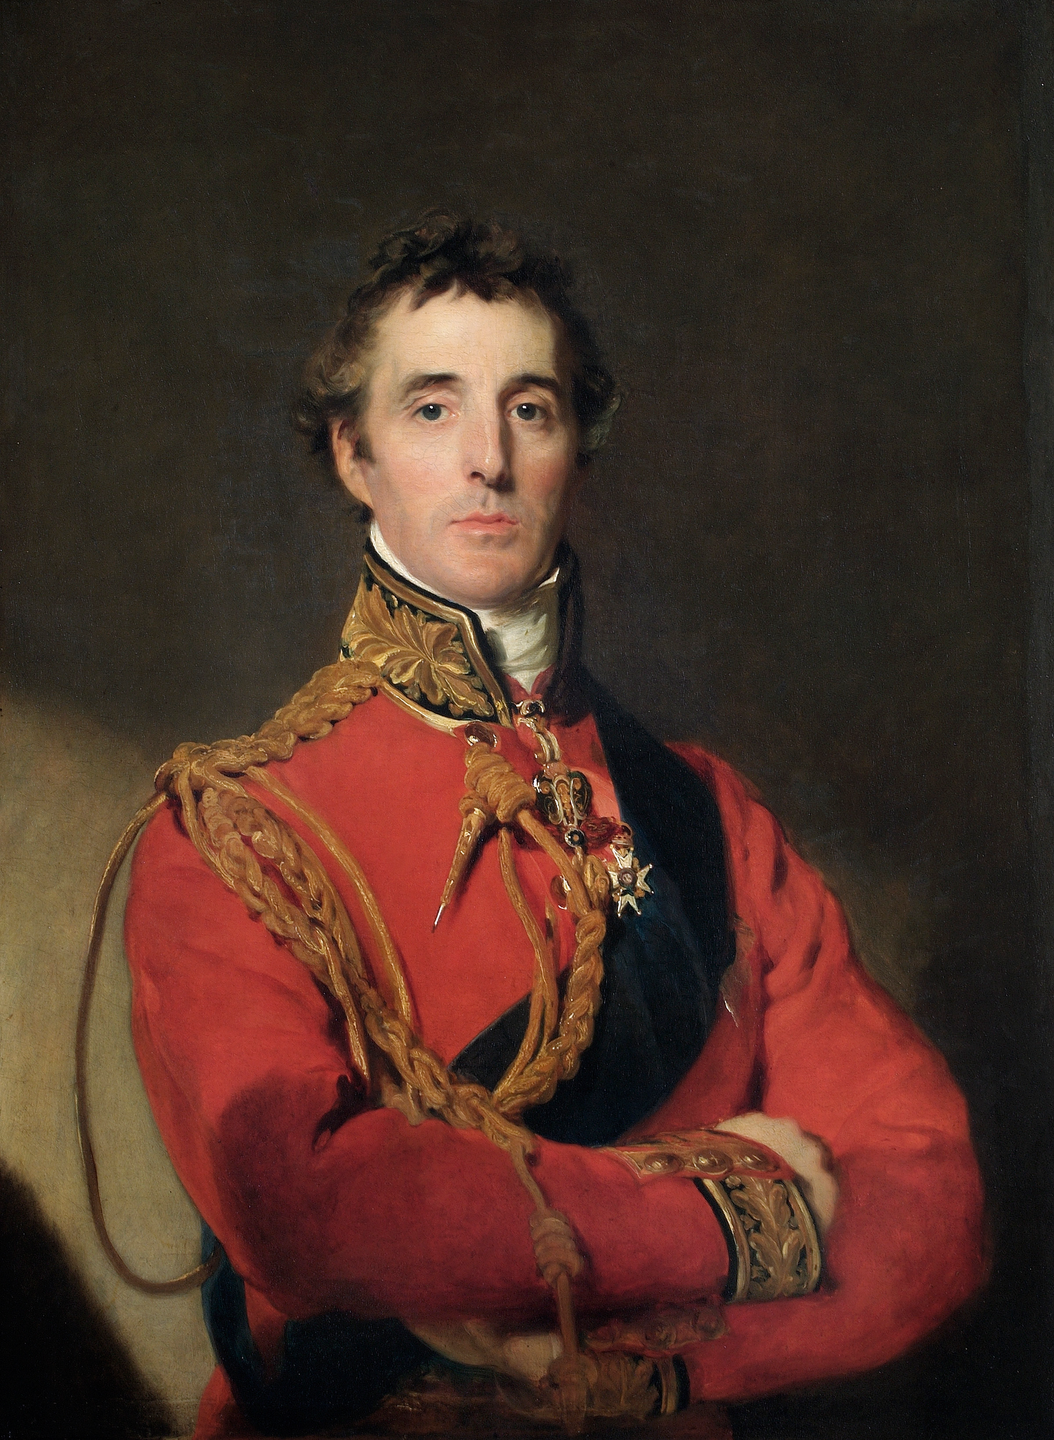 Arthur Wellesley, 1st Duke of Wellington. soldier and Tory statesman who was one of the leading military and political figures of 19th-century Britain, serving twice as Prime Minister. He won a notable victory against Napoleon at the Battle of Waterloo in 1815.